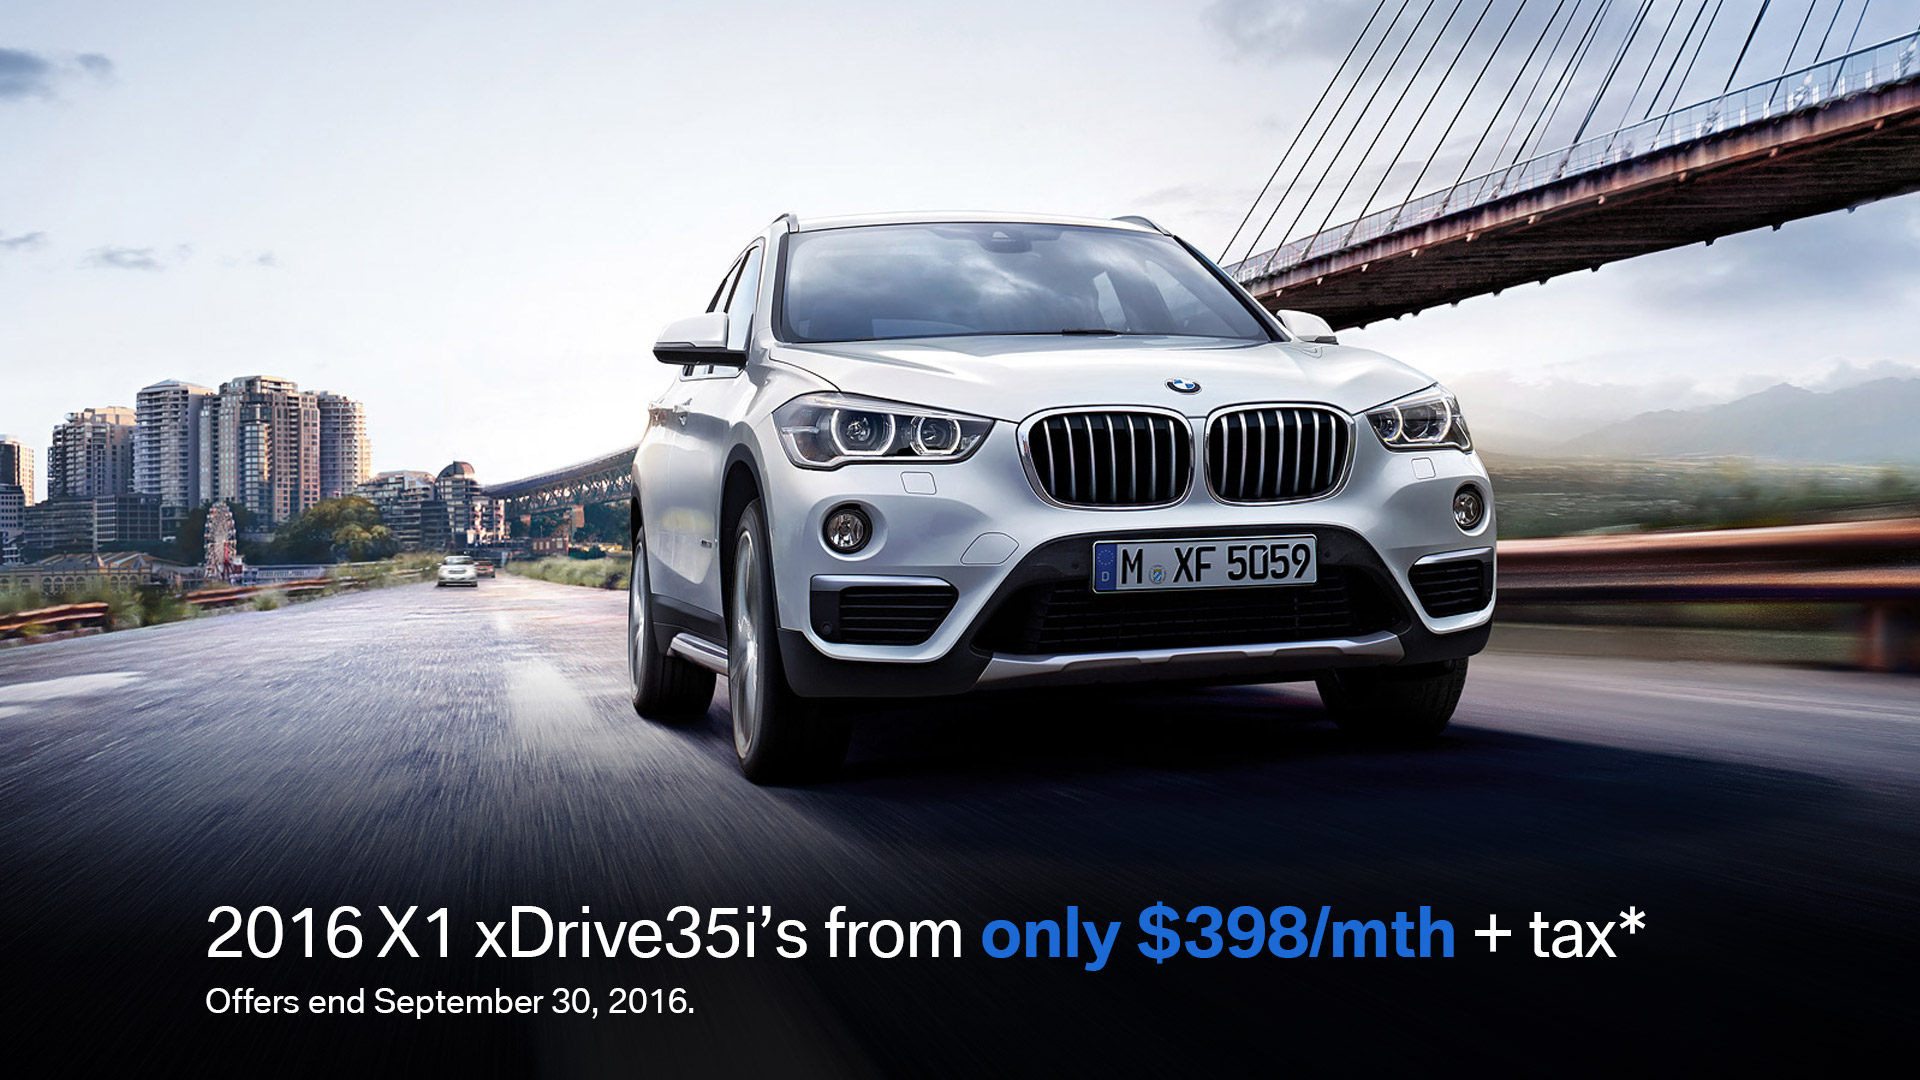 coming to offers price htm darien new of deals ct bmw soon lease